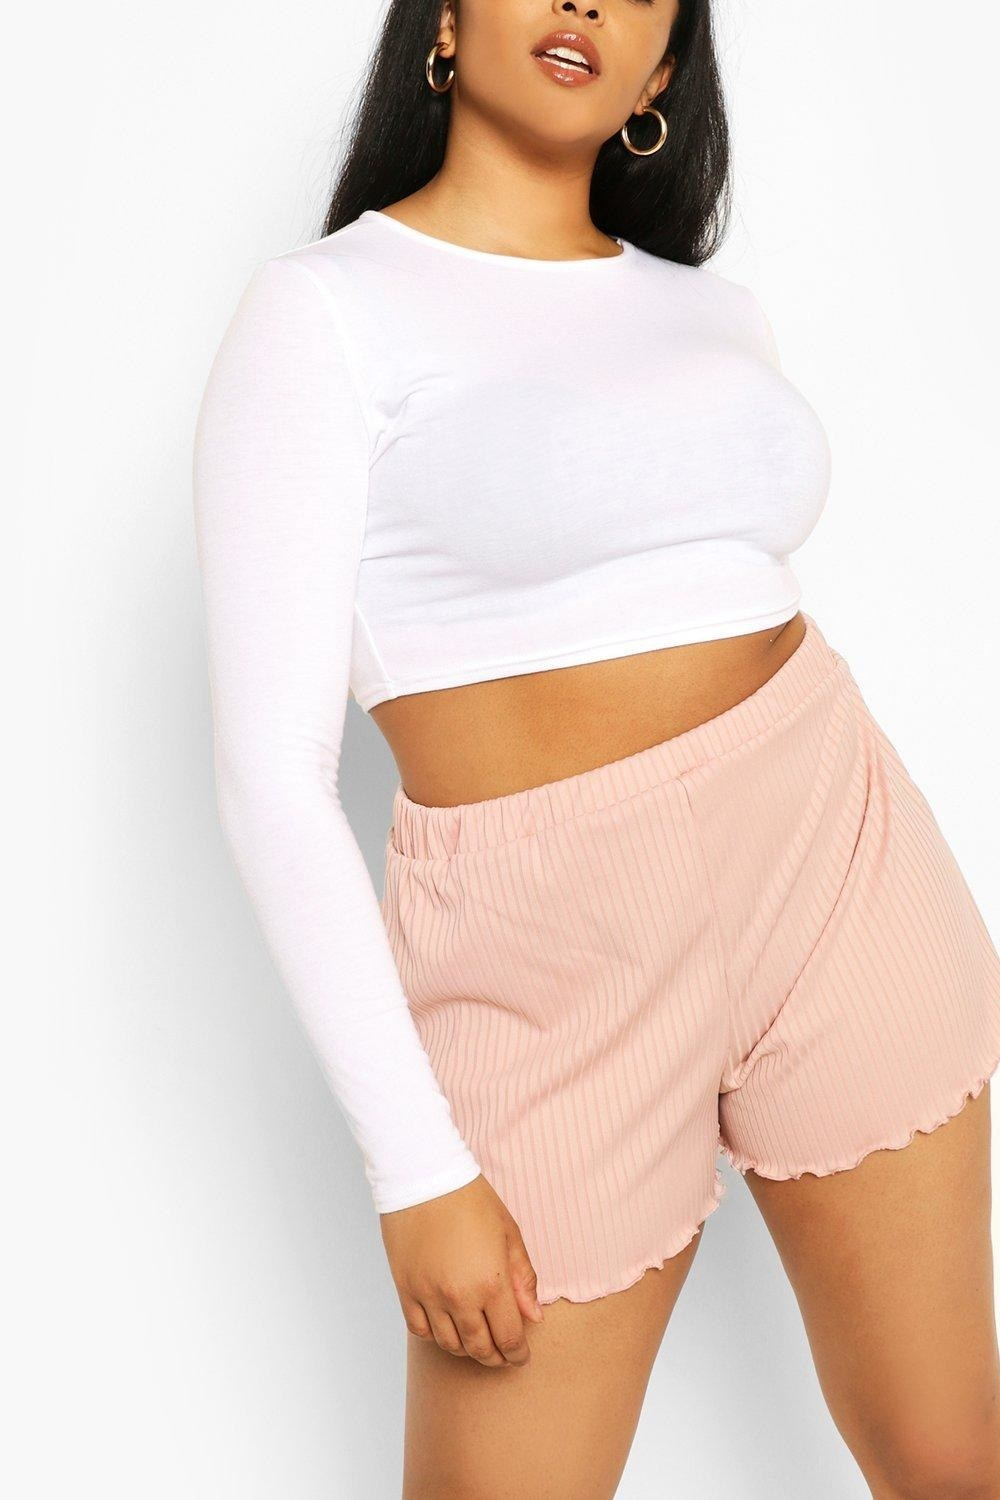 modeel wearing white crop top and blush ribbed shorts with a lettuce ruffle hem